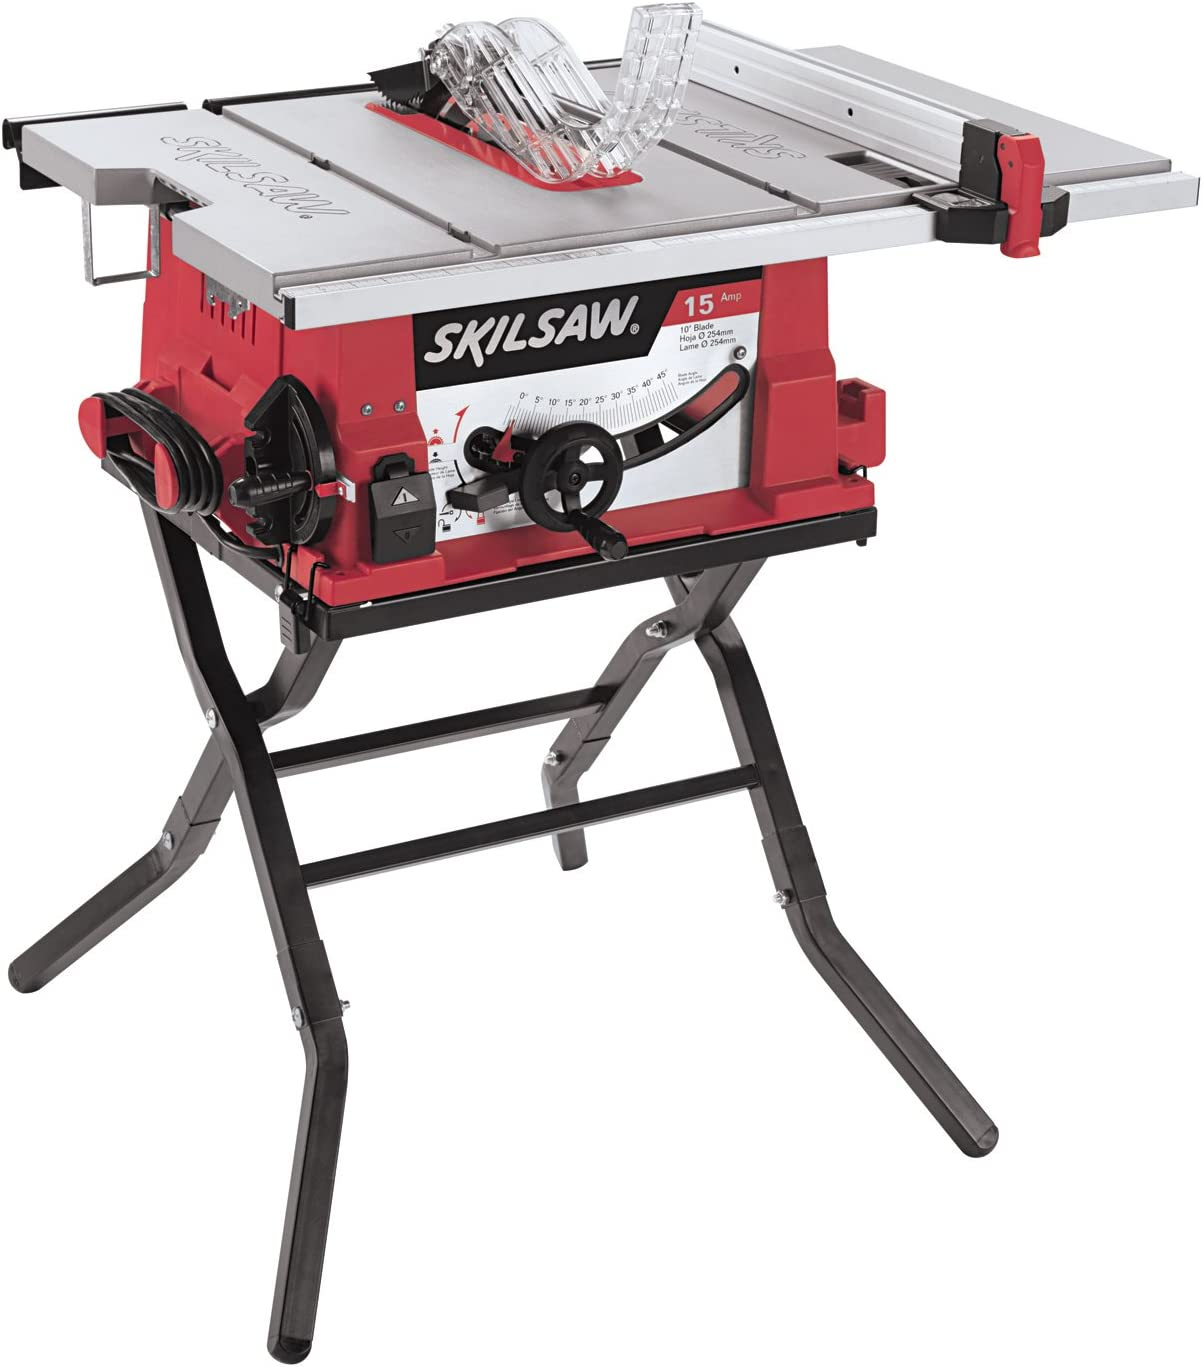 SKILSAW 3410-02 featured image